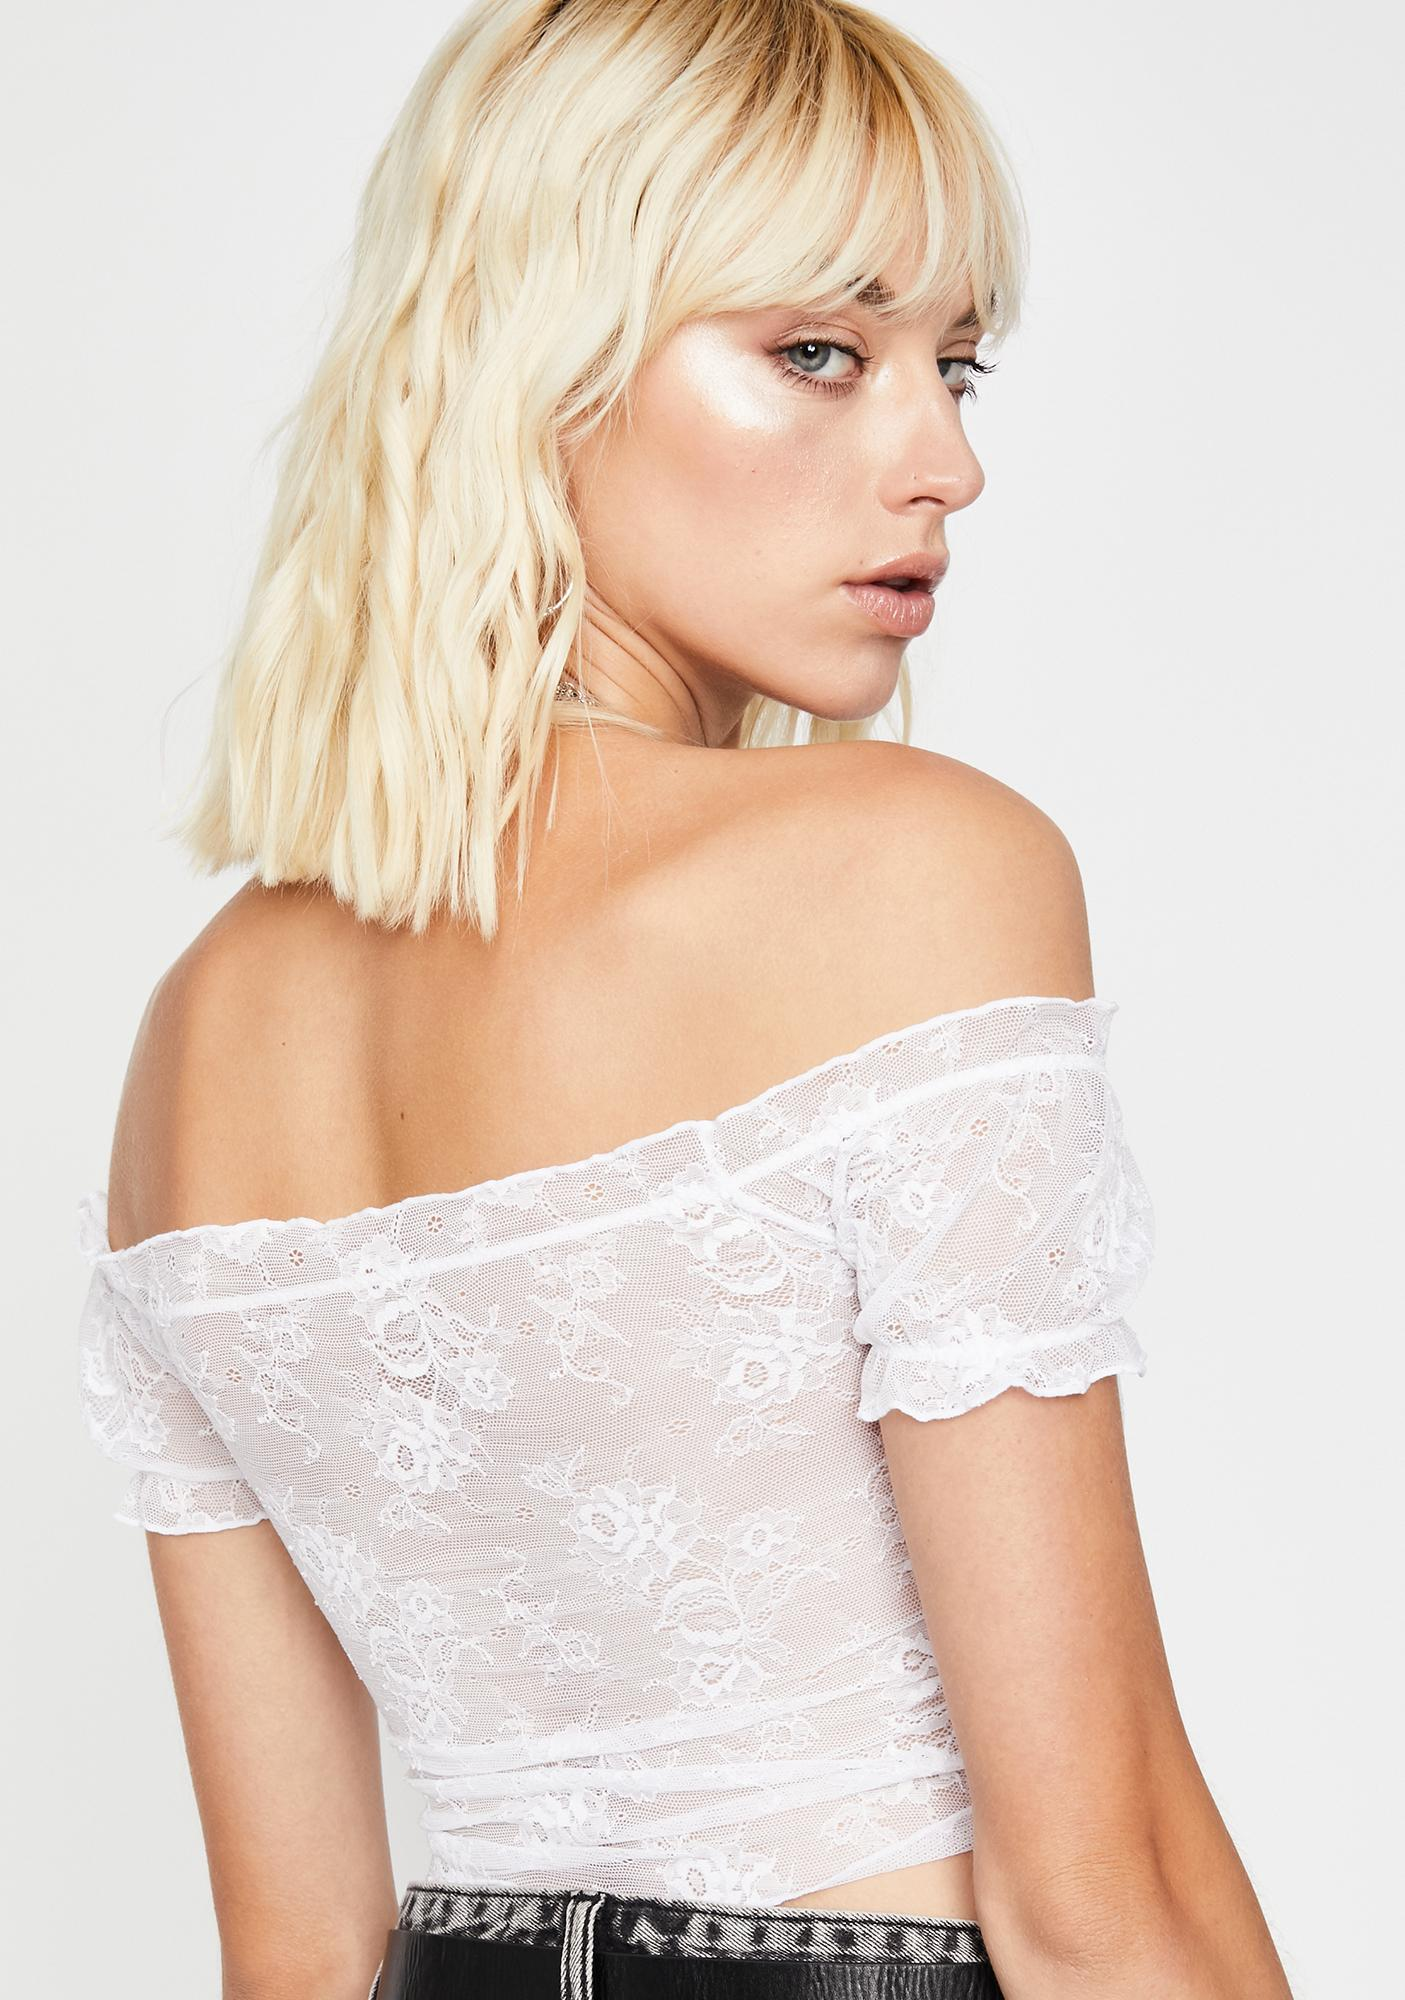 Purely No Drama Lace Crop Top